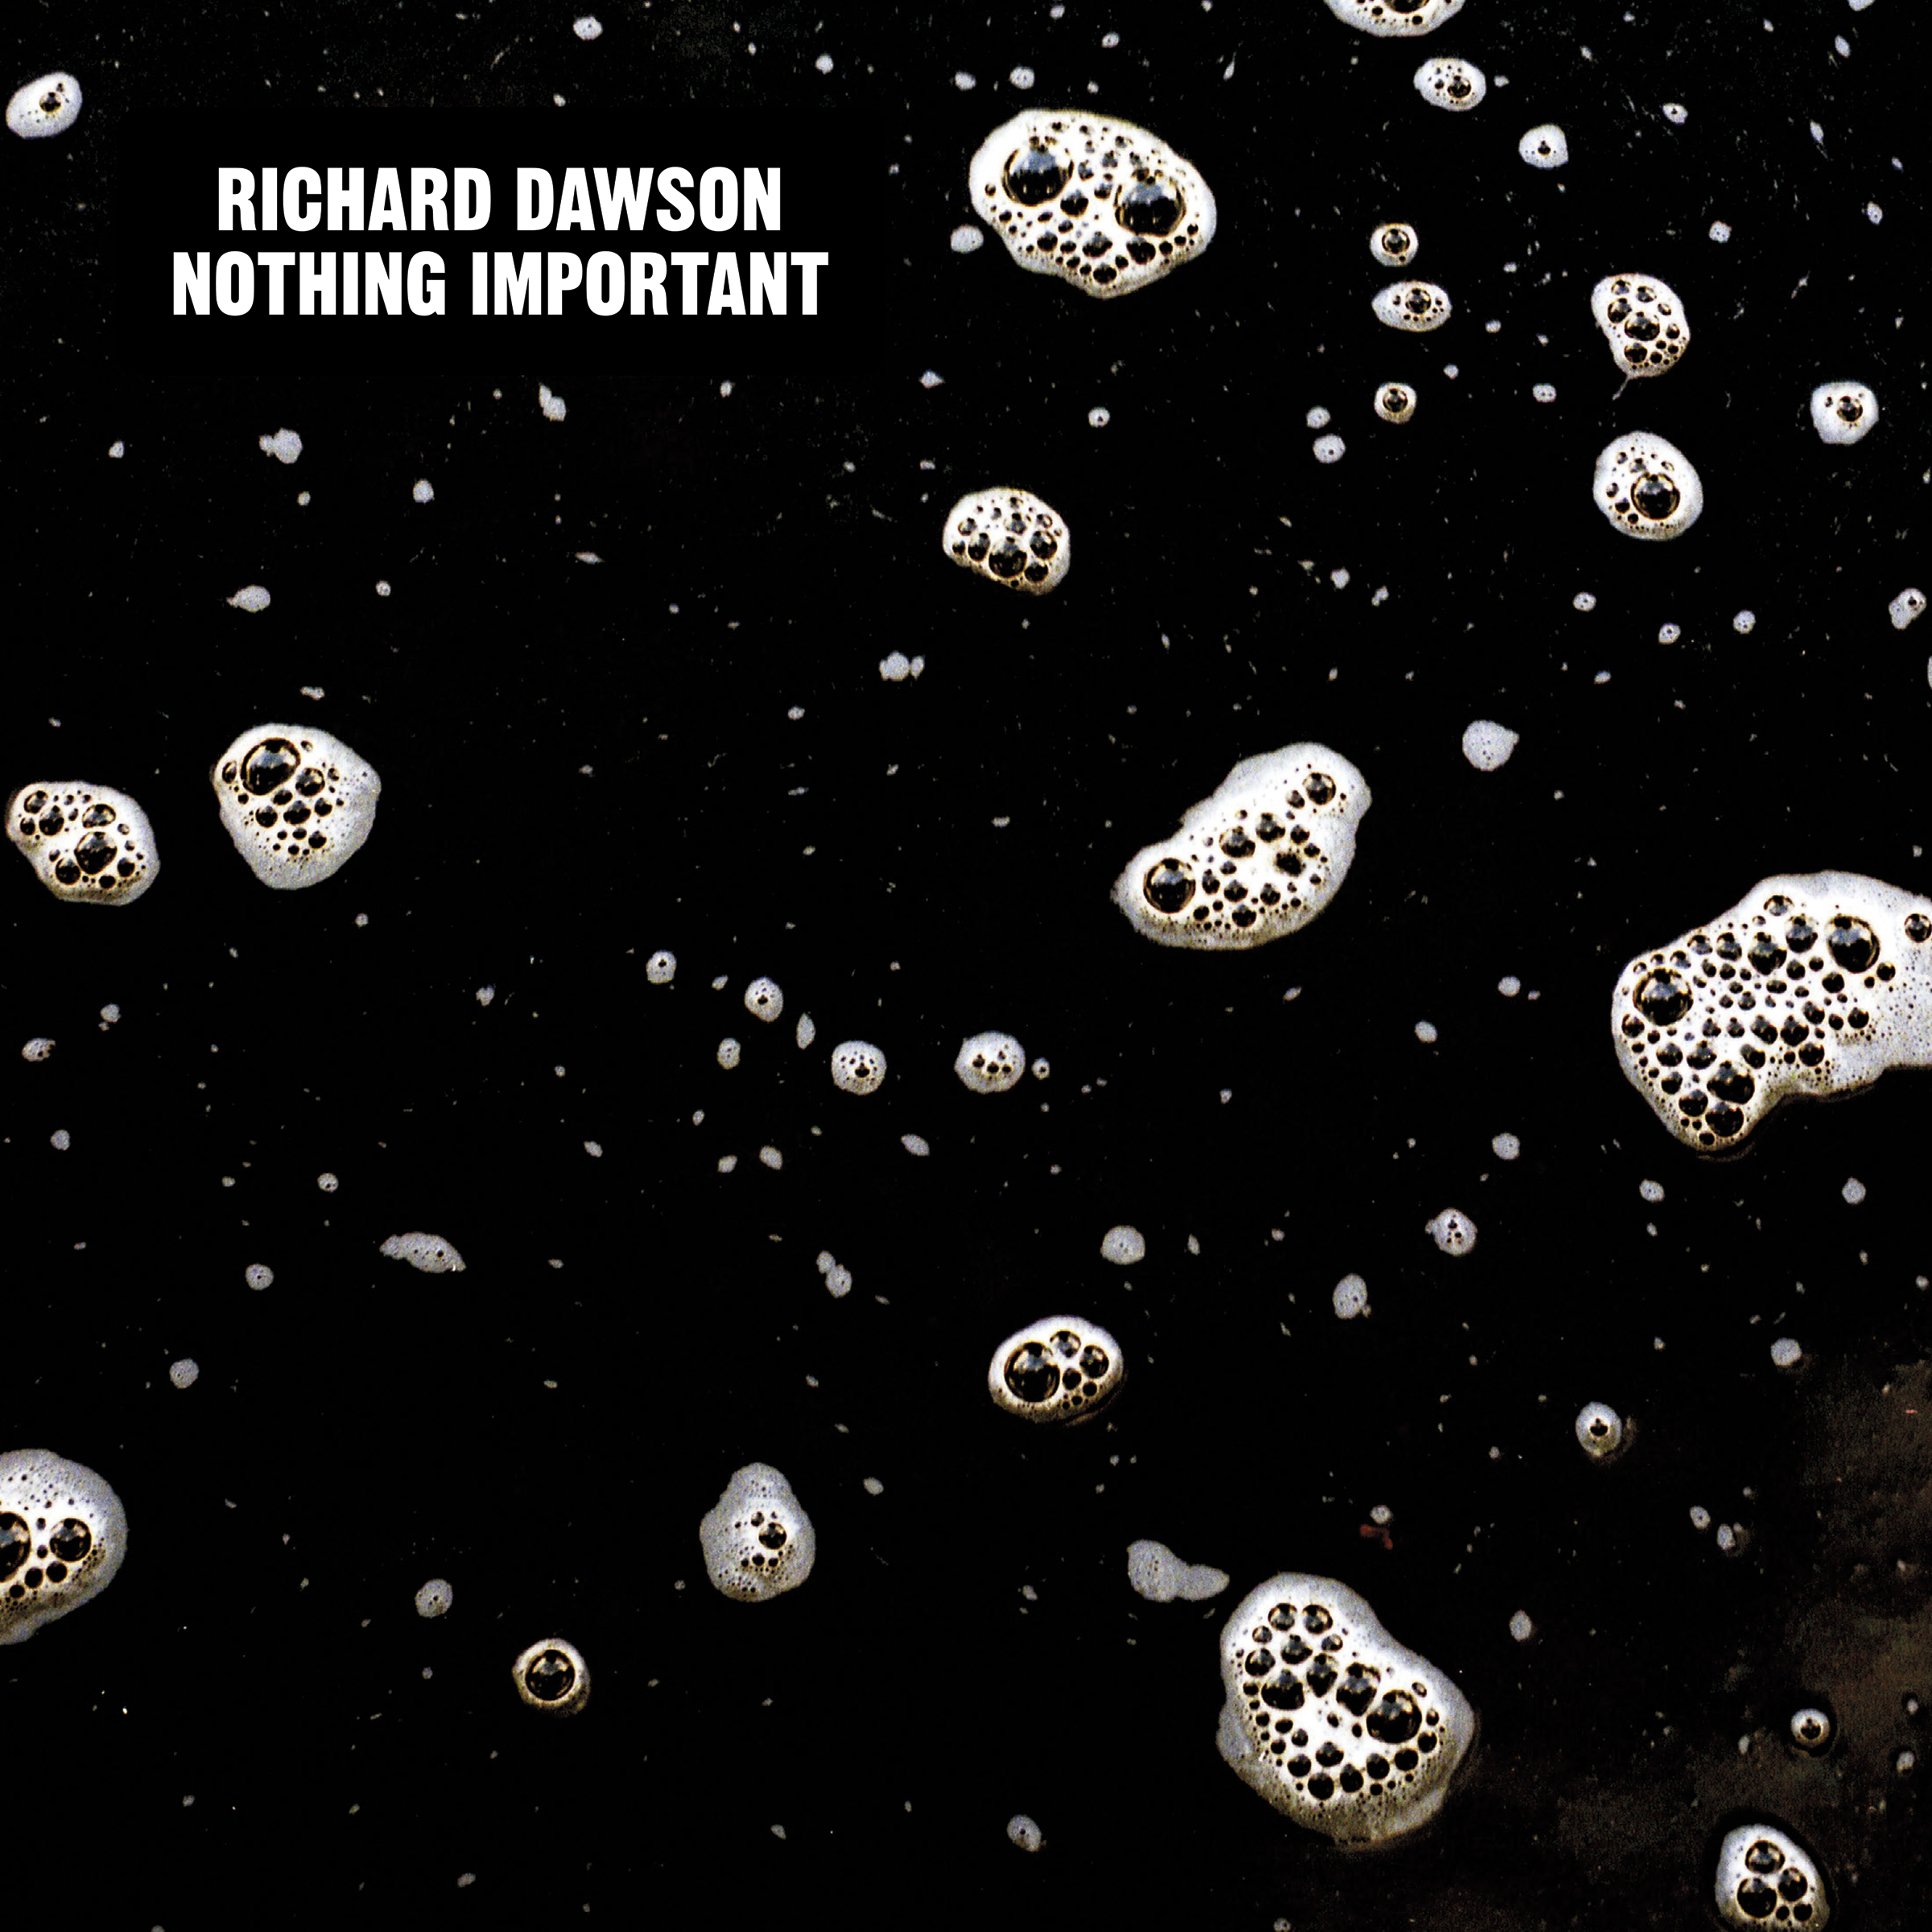 Richard Dawson - Nothing Important - 300dpi